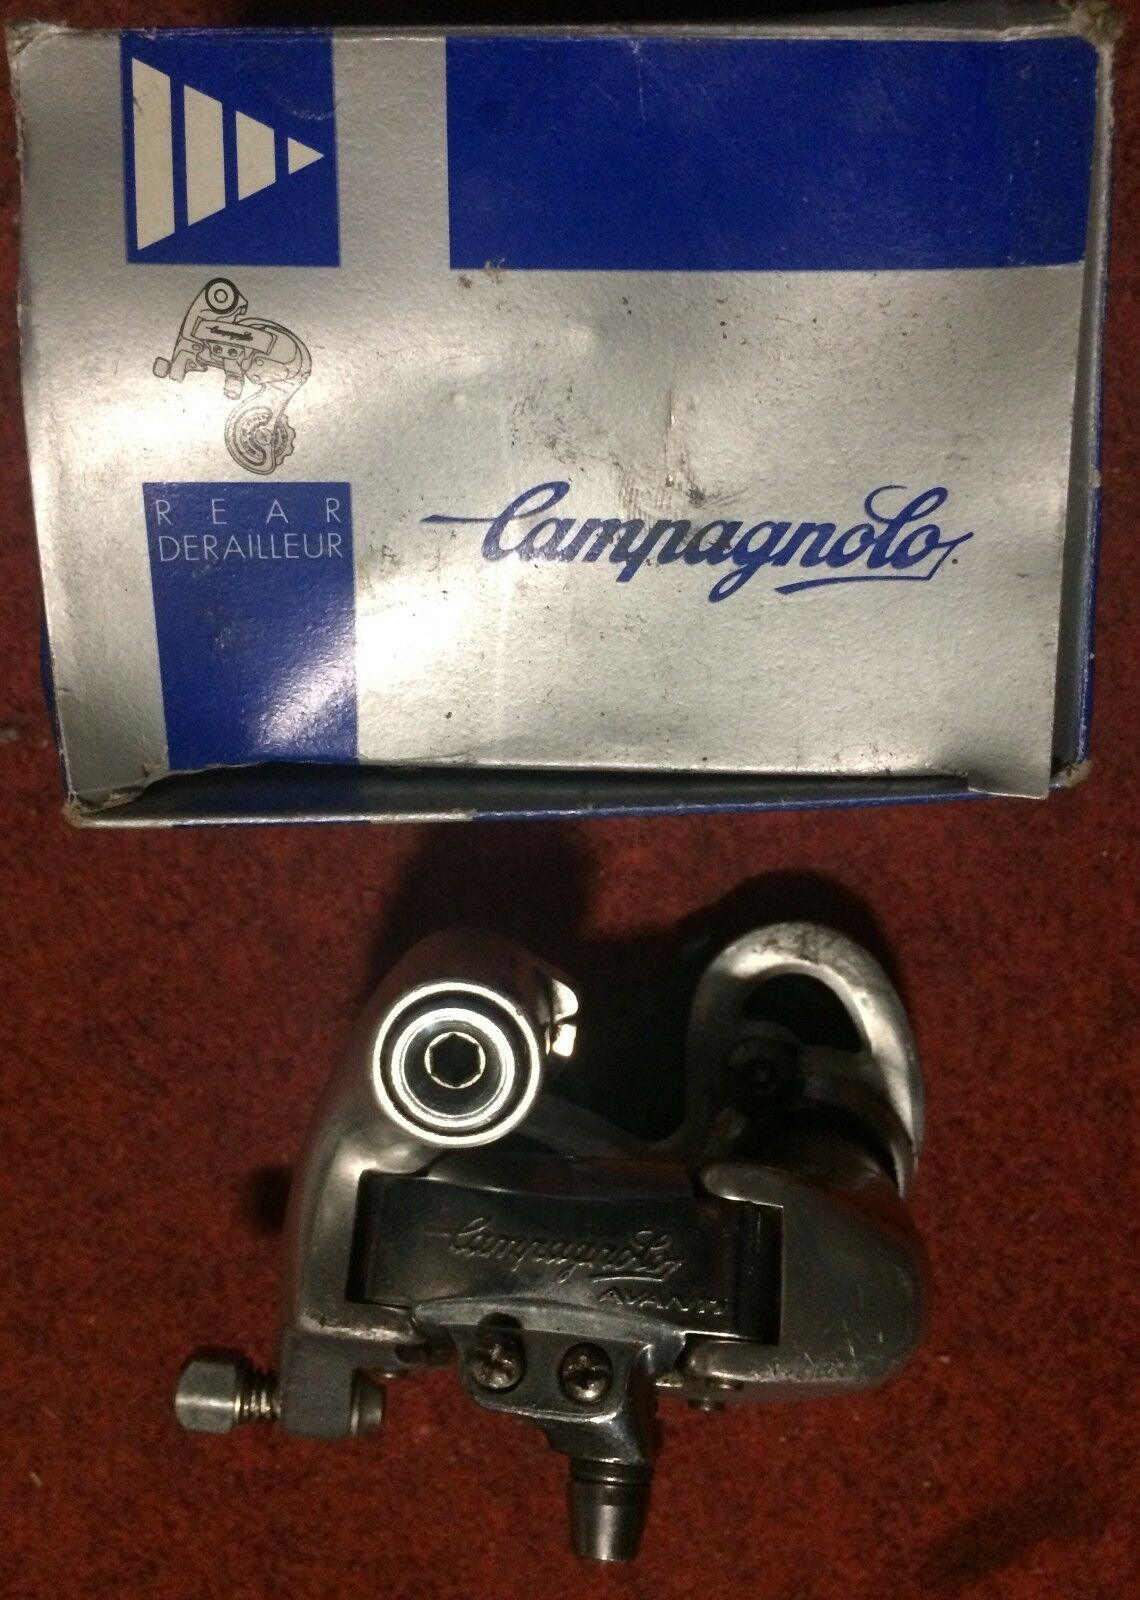 Campagnolo Avanti Bike Rear  Derailleur 9 Speed V Bike Race Rear Gear  retail stores